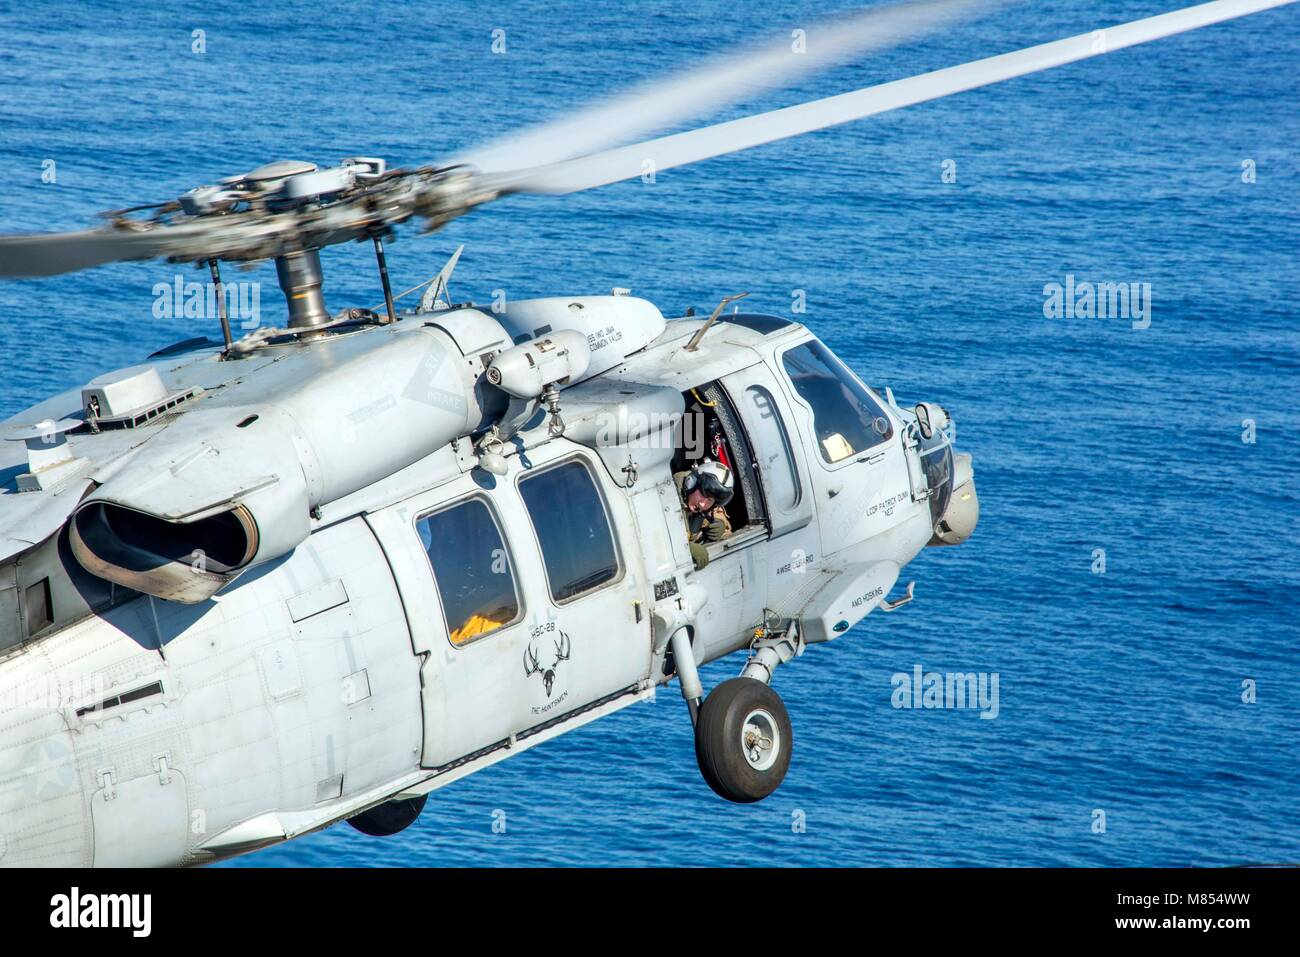 180312-N-JS726-0101 MEDITERRANEAN SEA (March 12, 2018) Naval Air Crewman (Helicopter) 2nd Class Nicholas Morrissey, Stock Photo